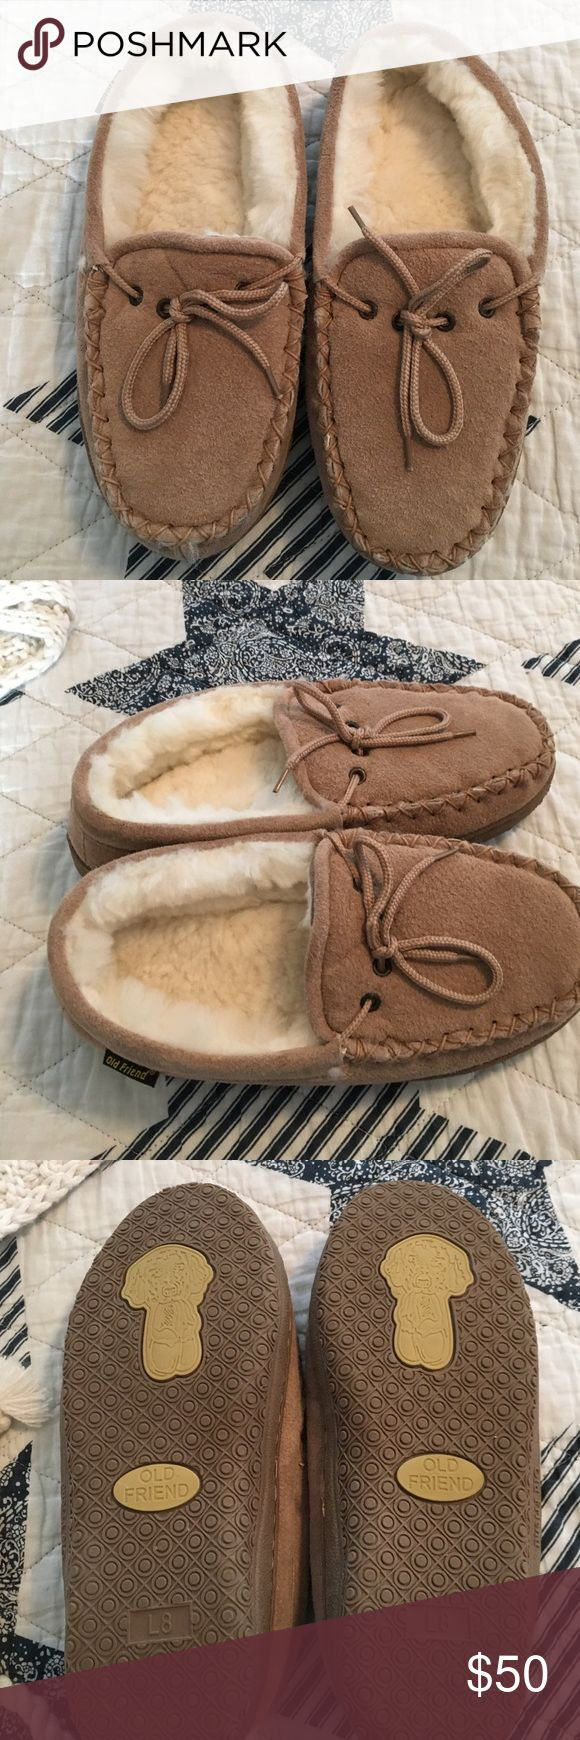 Old friend Slippers beige suede🙊🙈🙉 Oldfriend slippers,moccasinstlye,sheepskin, plush, hand stitched!New Old Friend Shoes Slippers